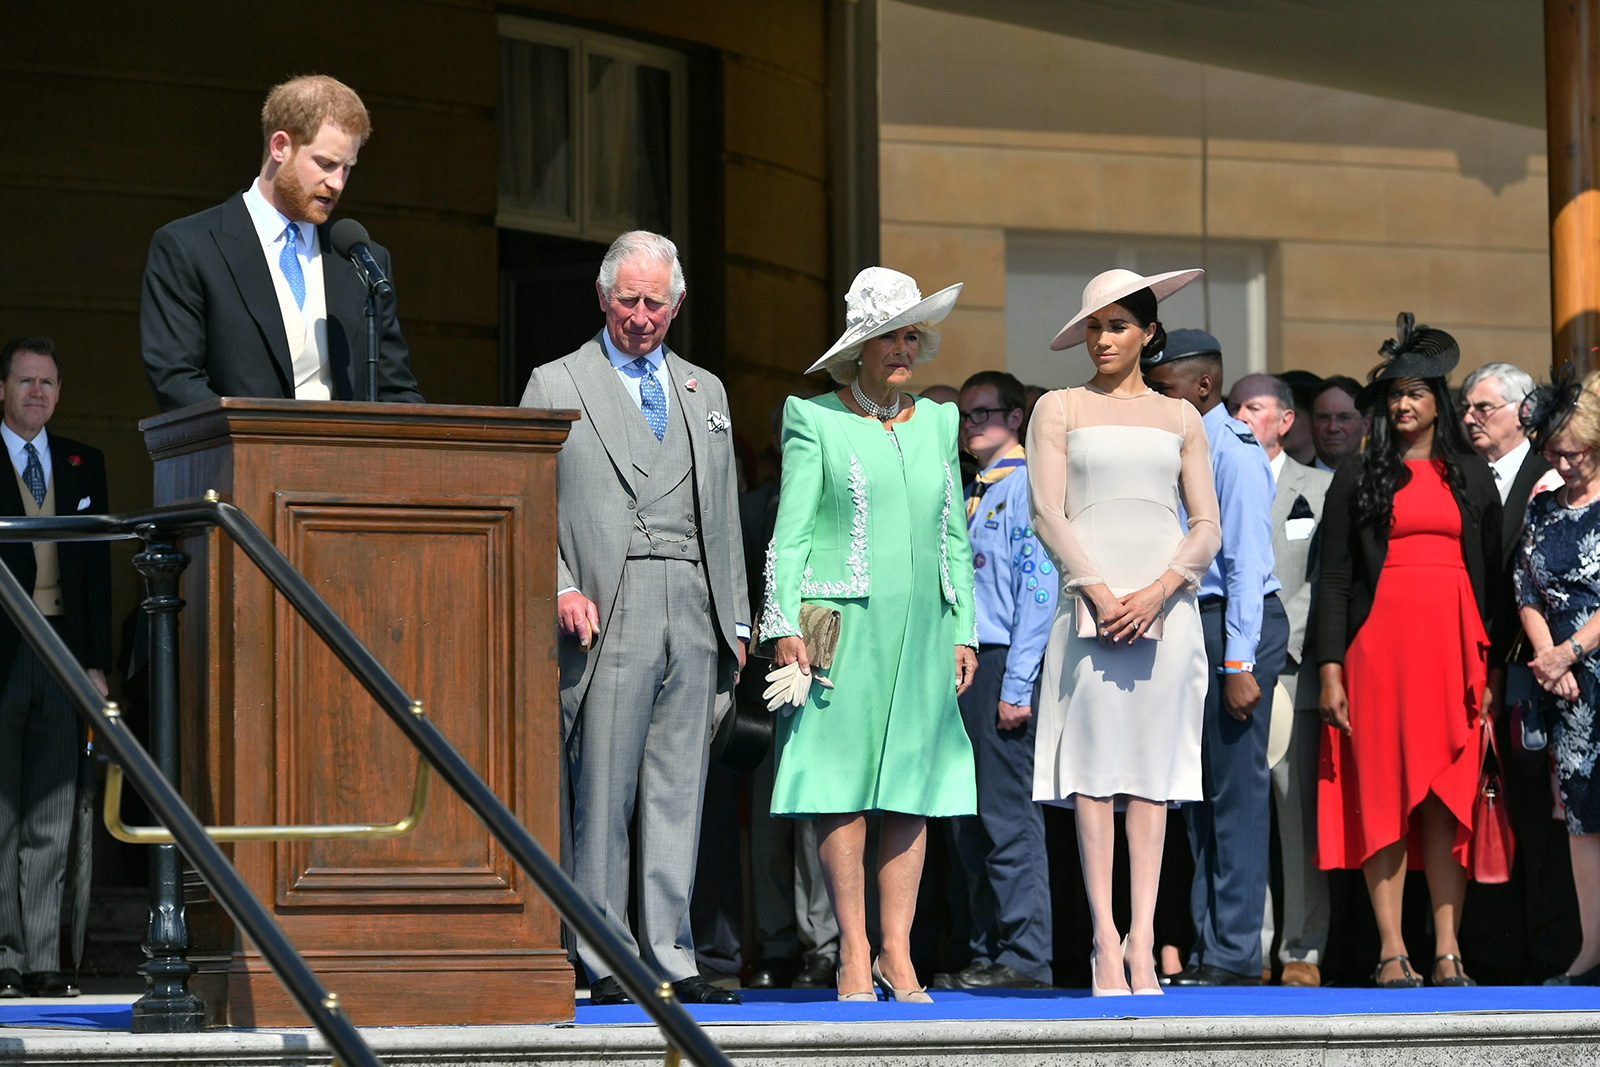 Meghan Markle makes royal debut as Duchess of Sussex at the Prince of Wales's 70th Birthday Garden Reception at Buckingham Palace on 22 May, 2018.